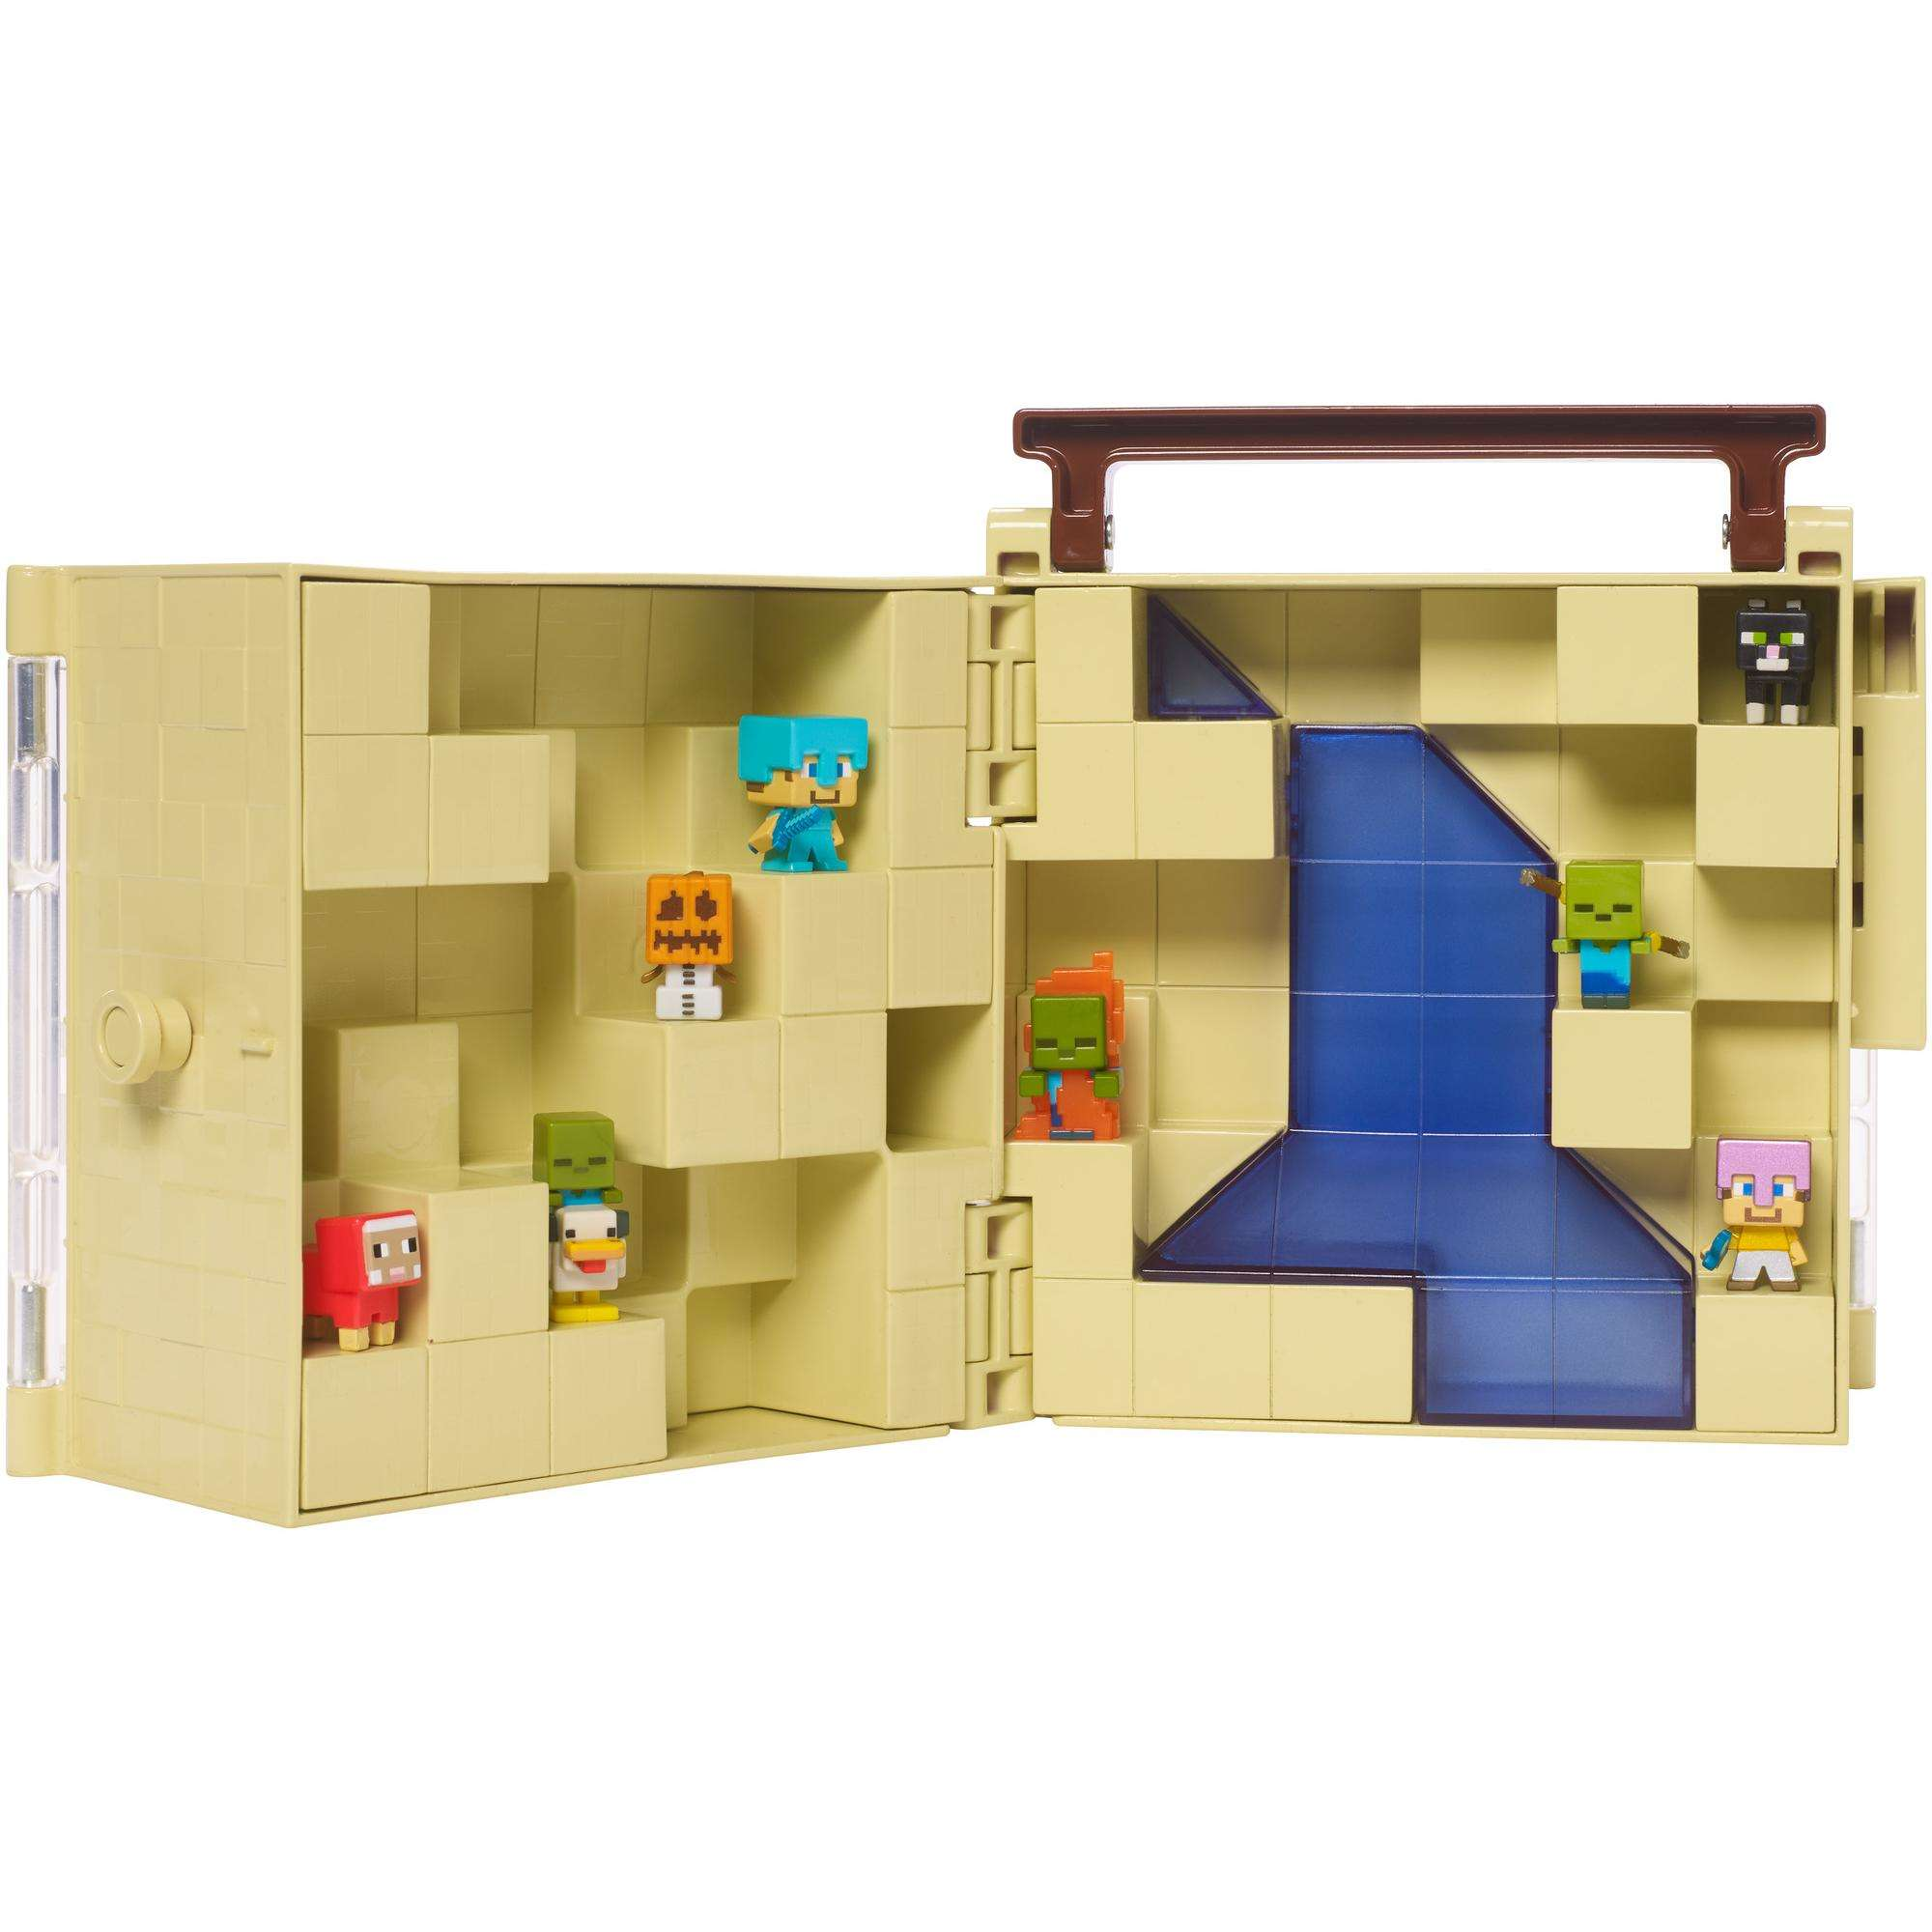 Minecraft Mini Figure Collector Case by MATTEL BRANDS A DIVISION OF MATTEL DIRECT IMPORT INC